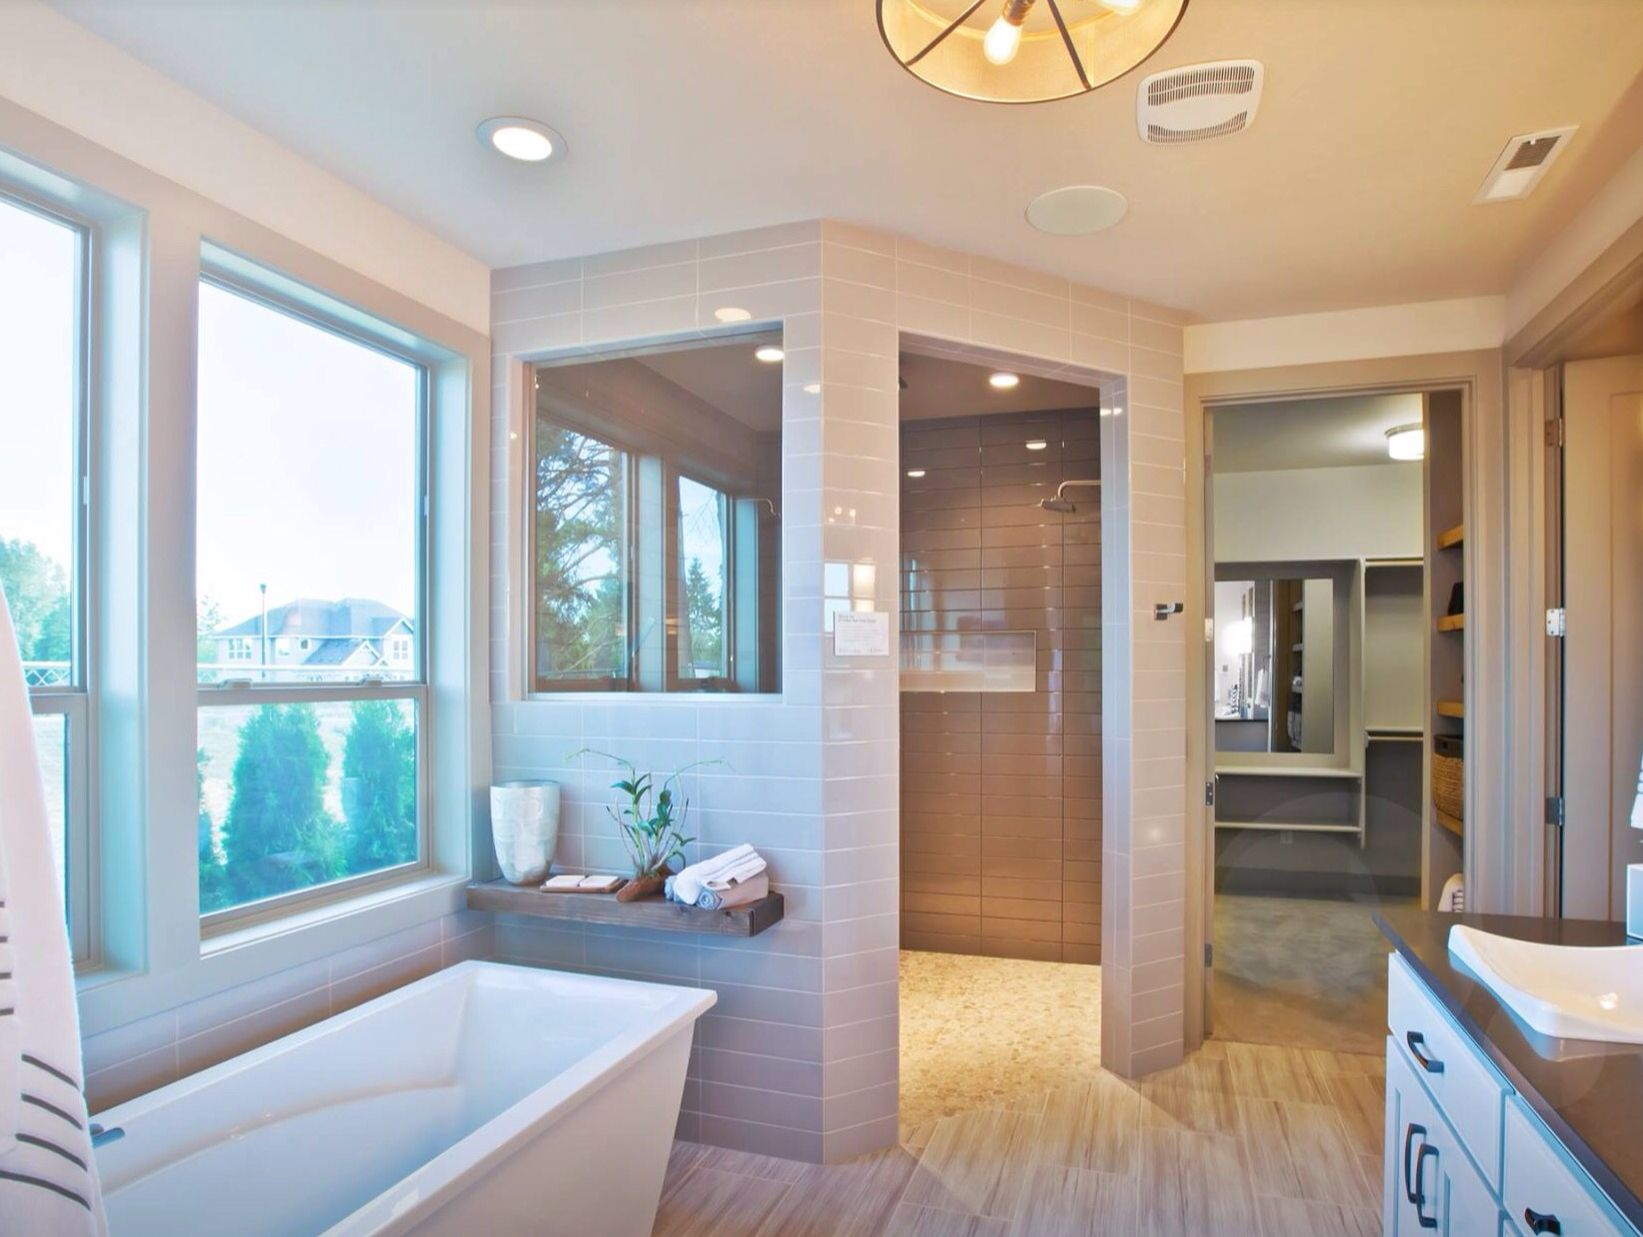 Beautifully done walk-in shower positioned in the corner